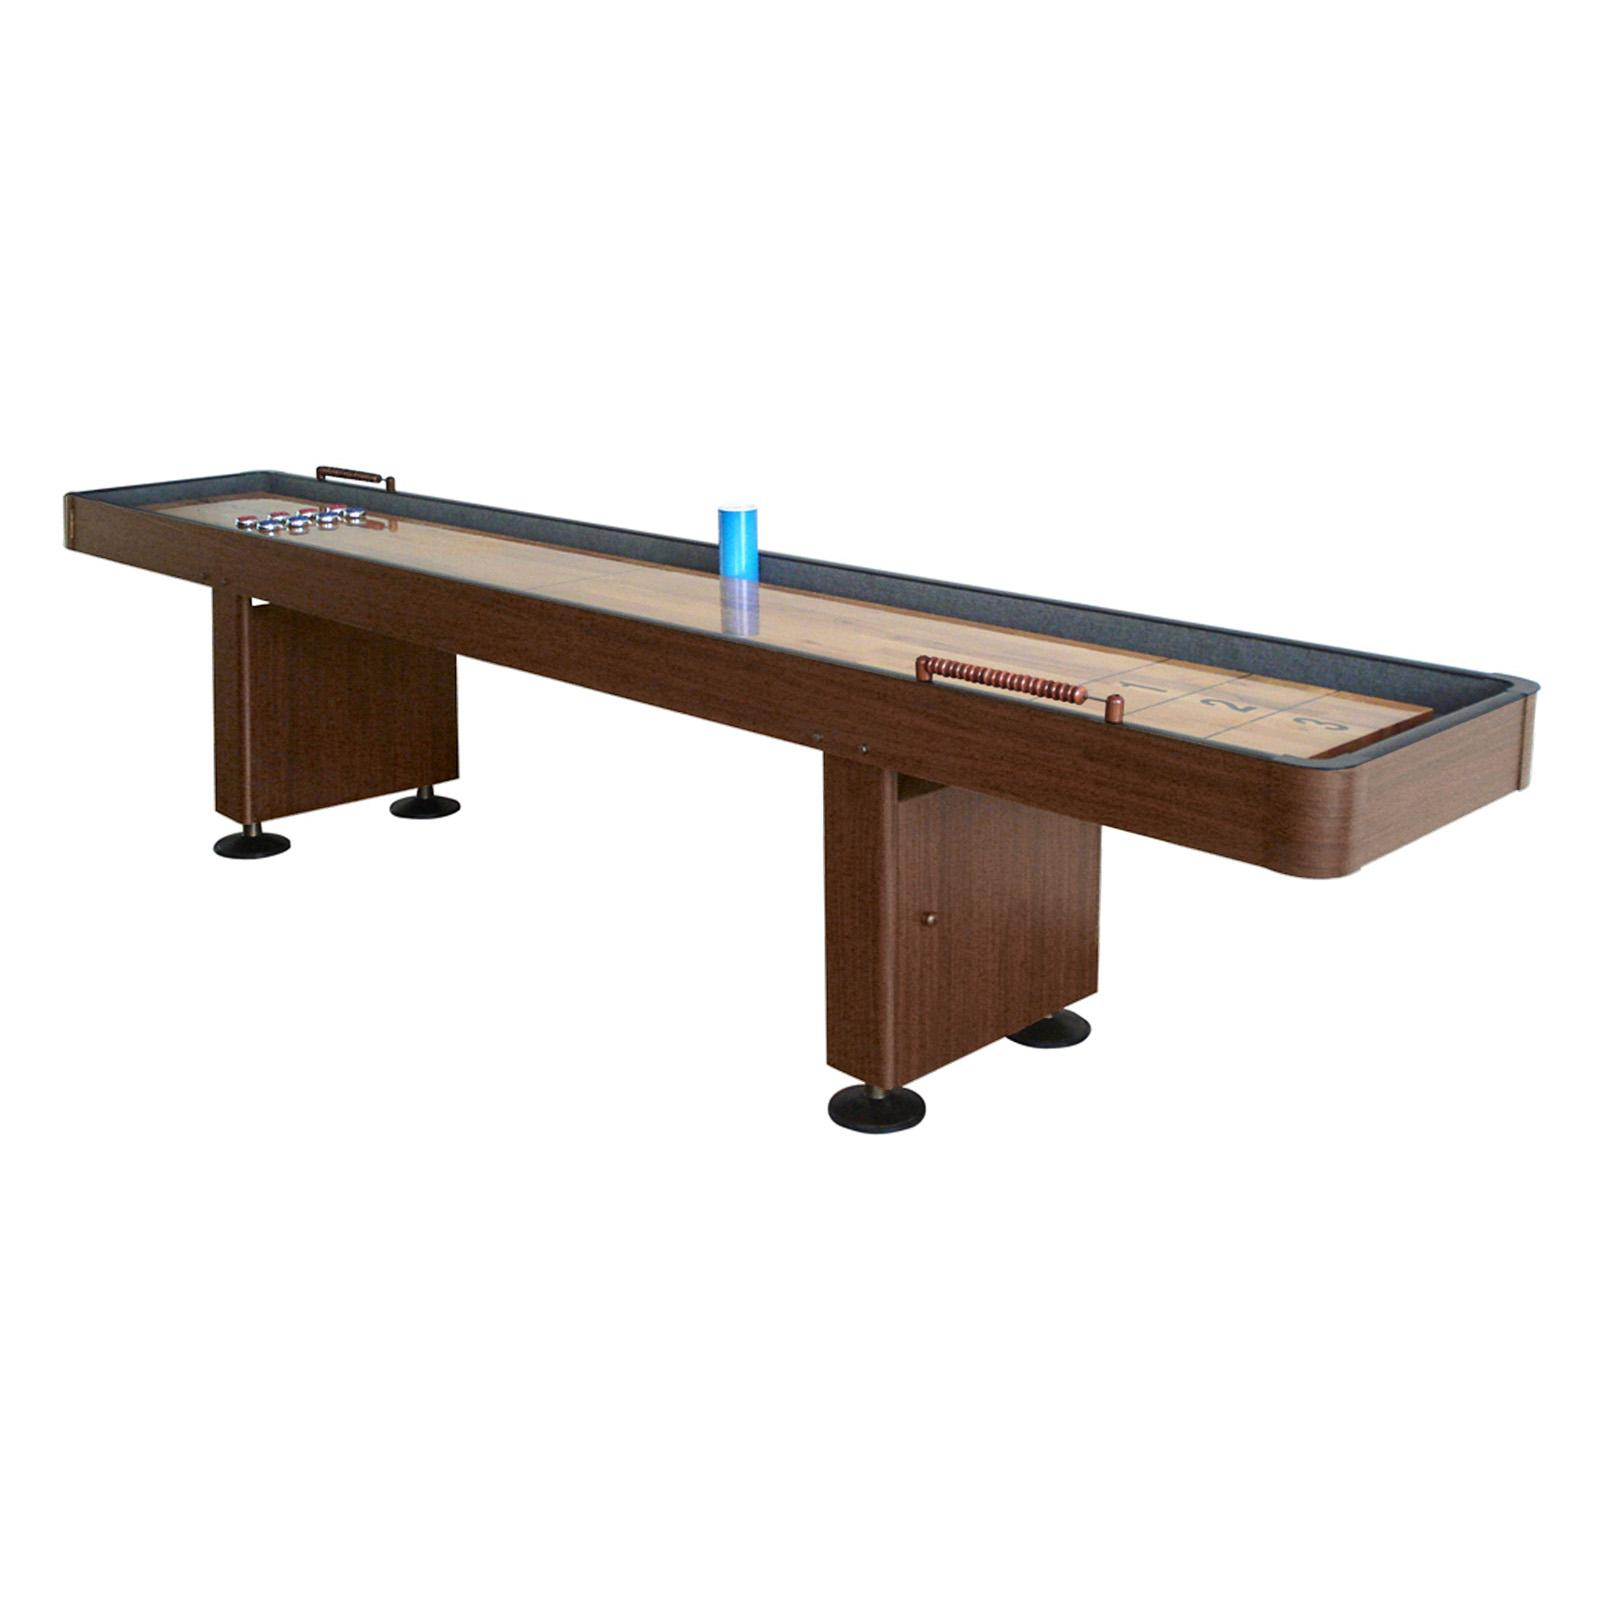 Hathaway Shuffleboard Table with Accessories - BG1205